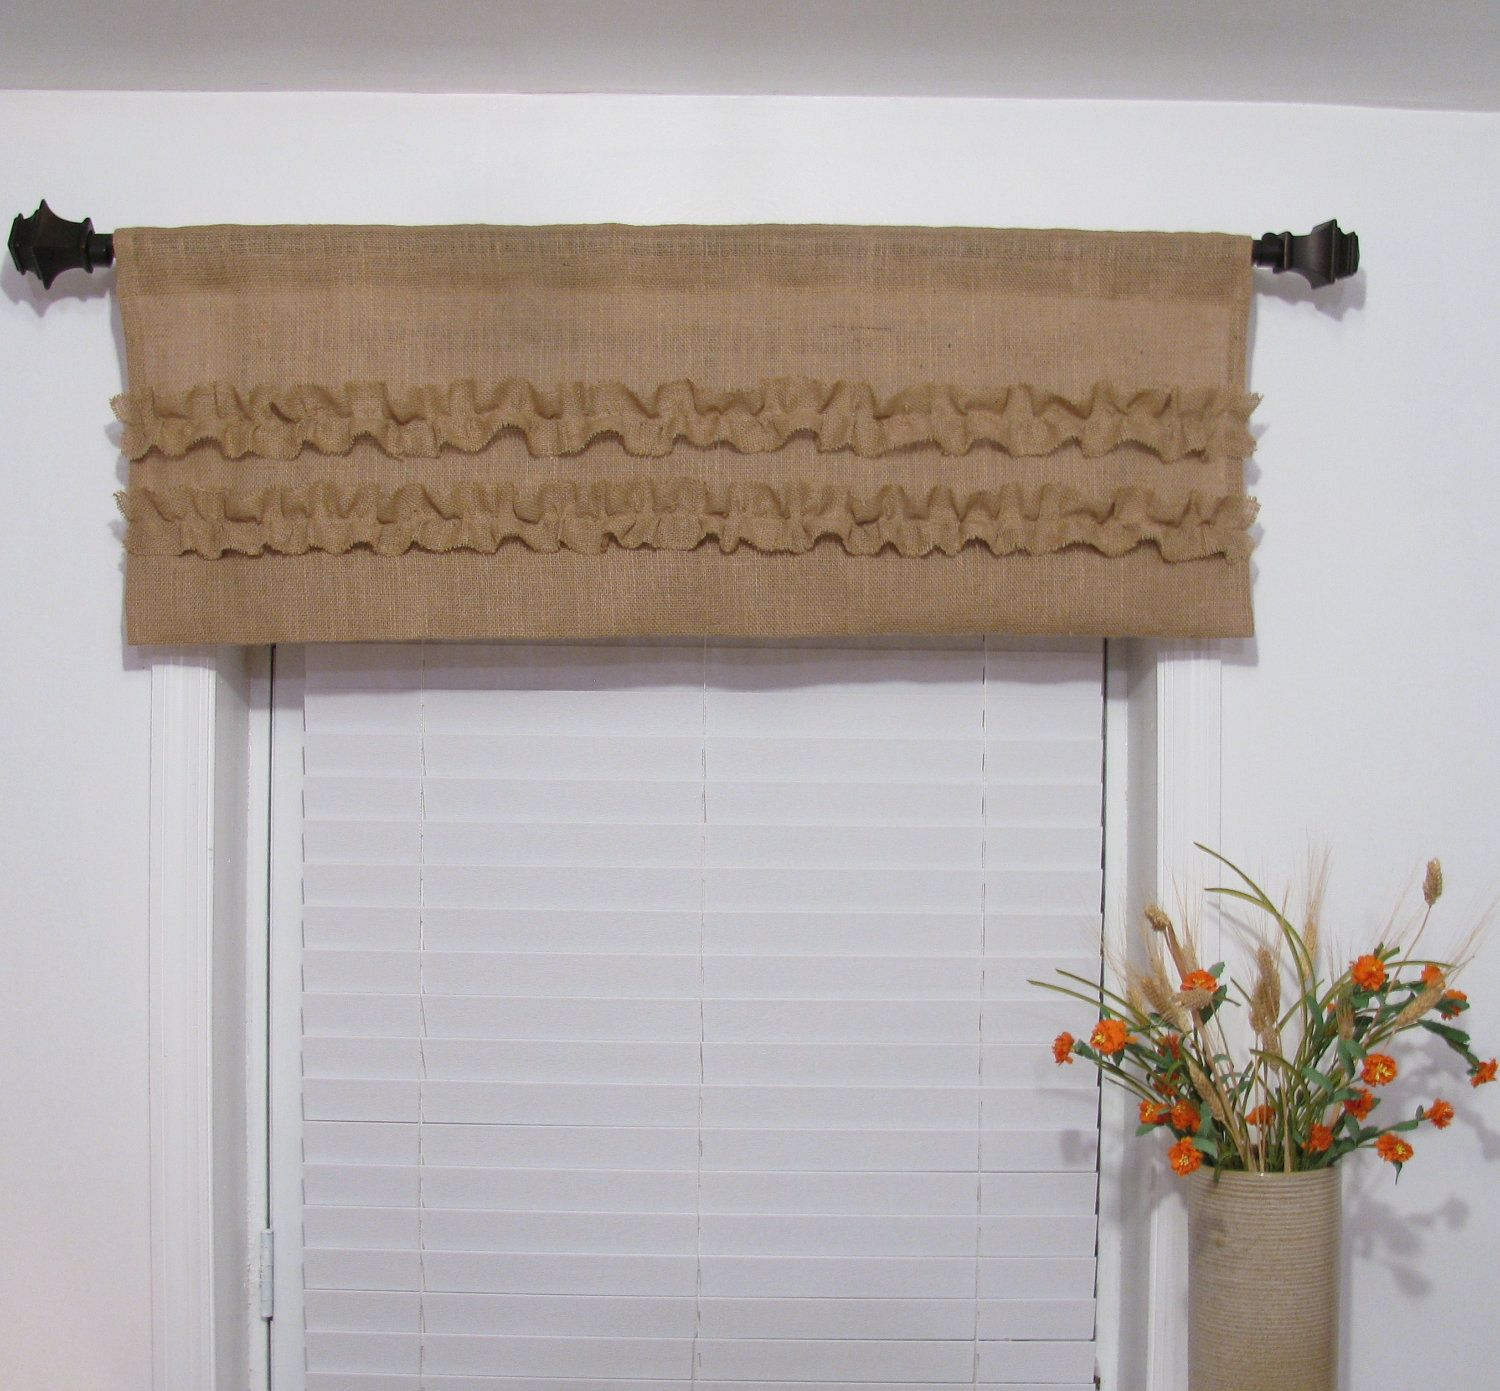 Rustic kitchen window treatments  natural burlap window valance ruffled rustic curtain custom sizing